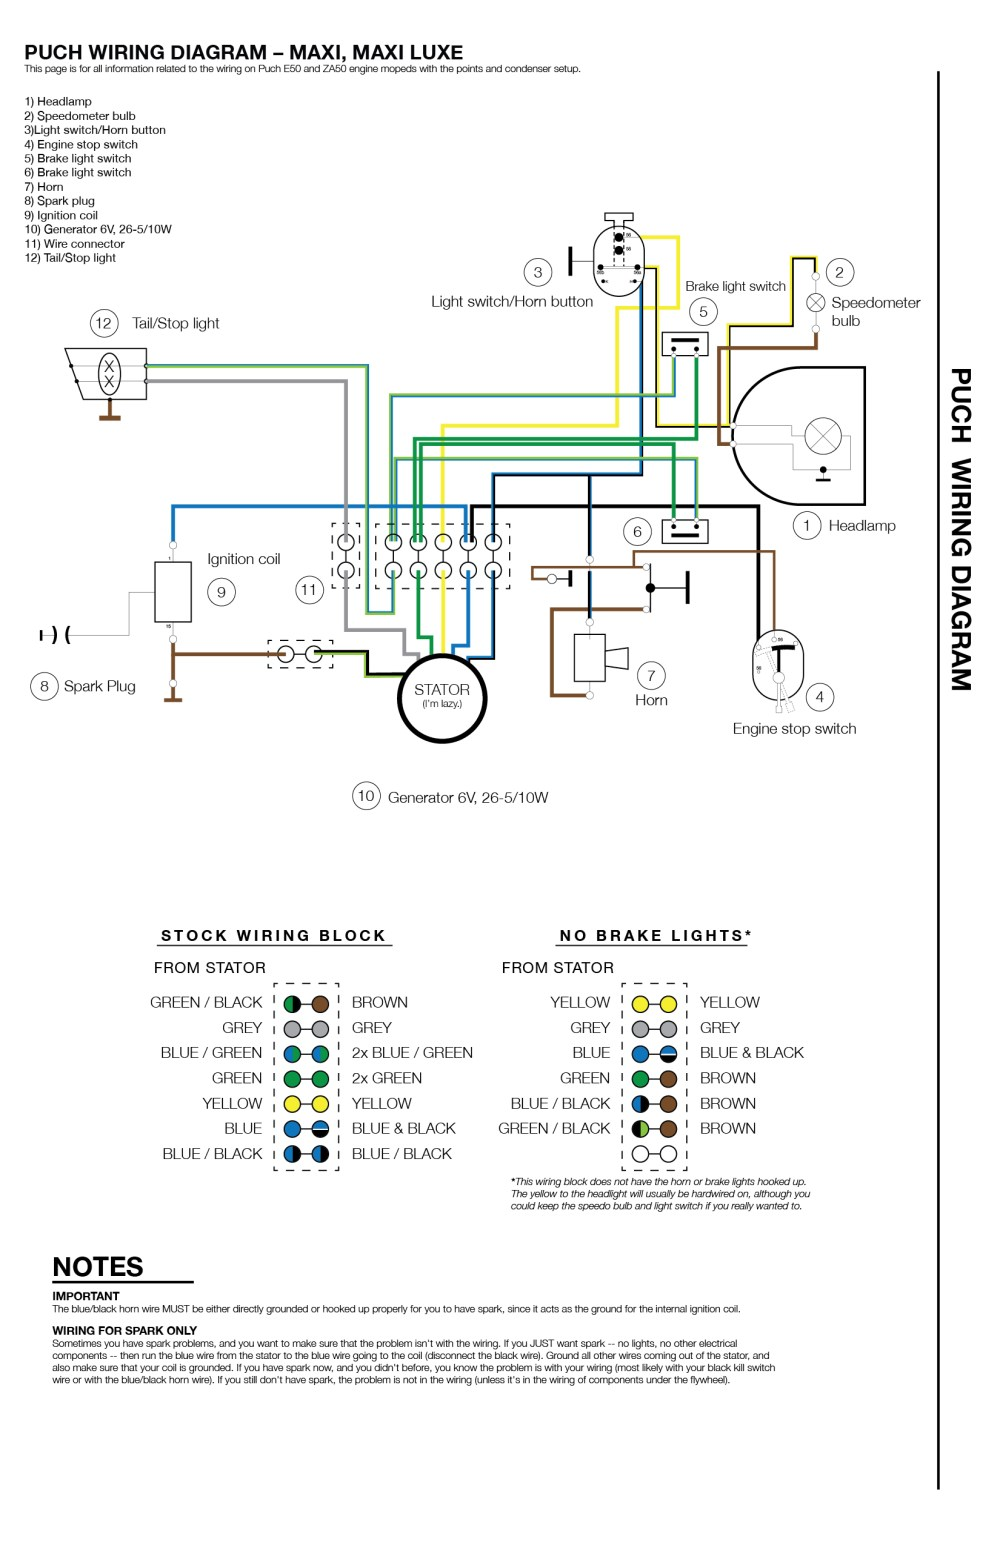 medium resolution of puch wiring 02 jpg